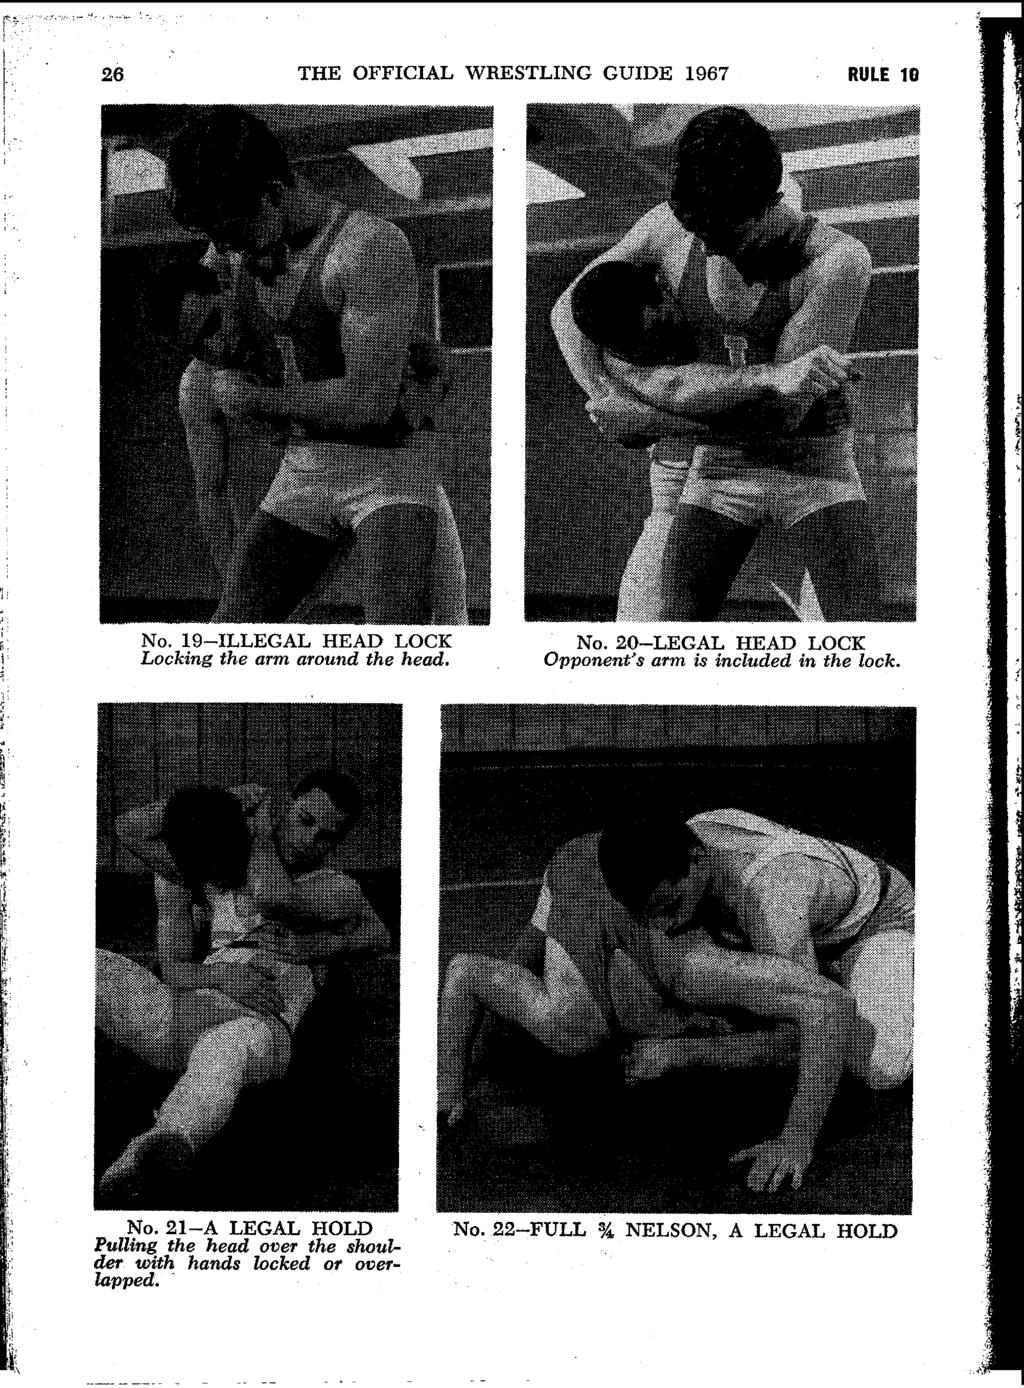 - 4 I 26 THE OFFICIAL WRESTLING GUIDE 1967 RULE 10 NO. 19-ILLEGAL HEAD LOCK Locking the arm around the head. NO. 20-LEGAL HEAD LOCK Opponent's arm is included in the lock.